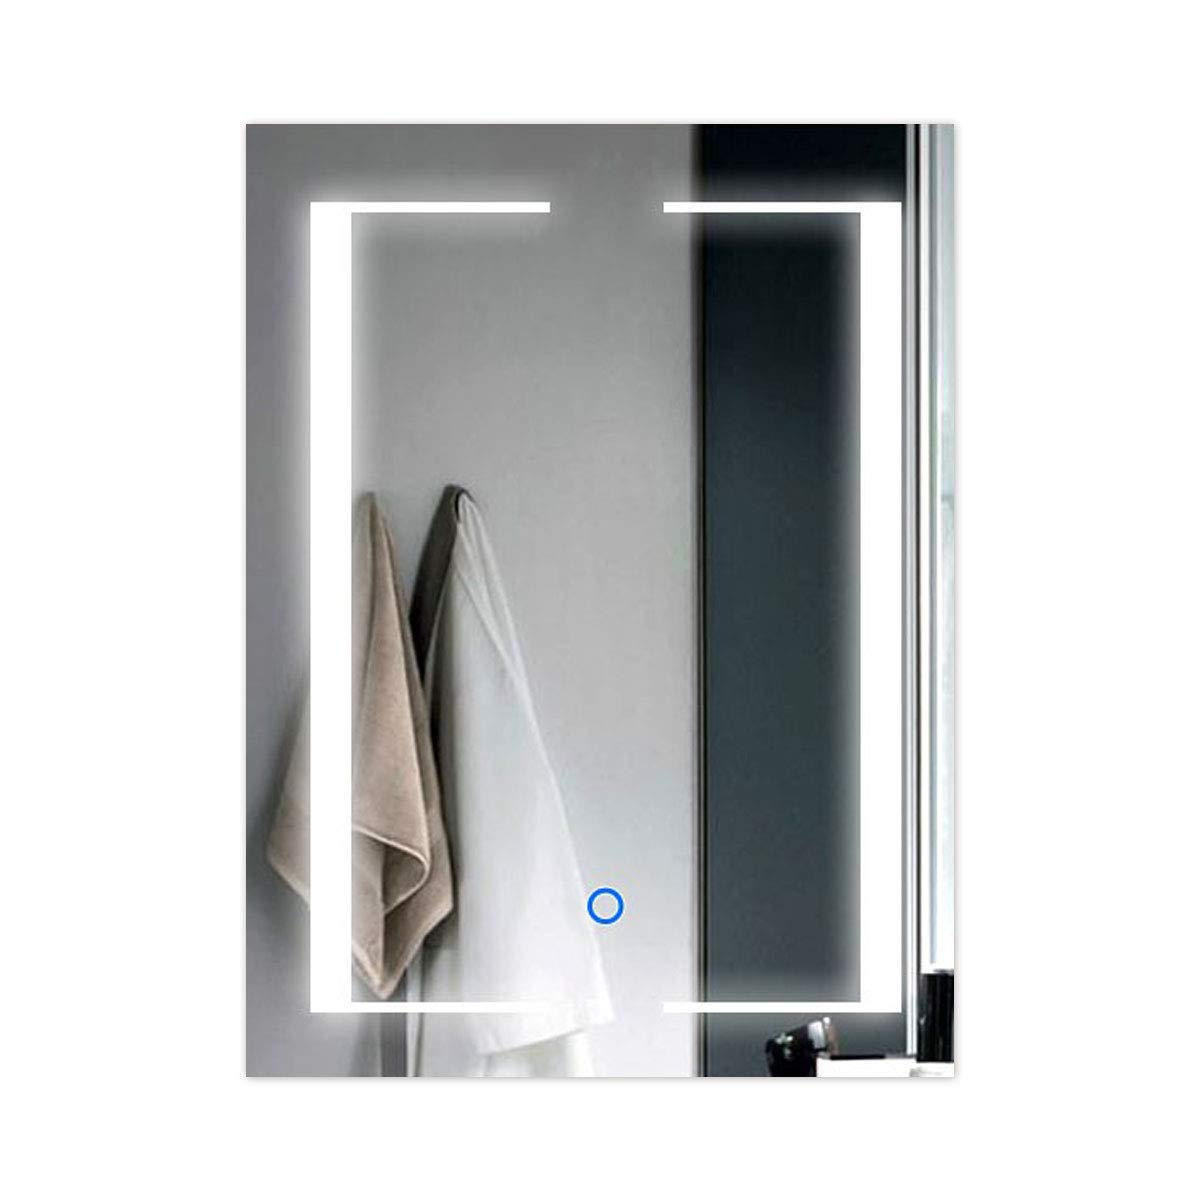 24 Inch * 32 Inch Vertical LED Wall Mounted Lighted Vanity Bathroom Silvered Mirror with Touch Button (B-CL011) Decoraport